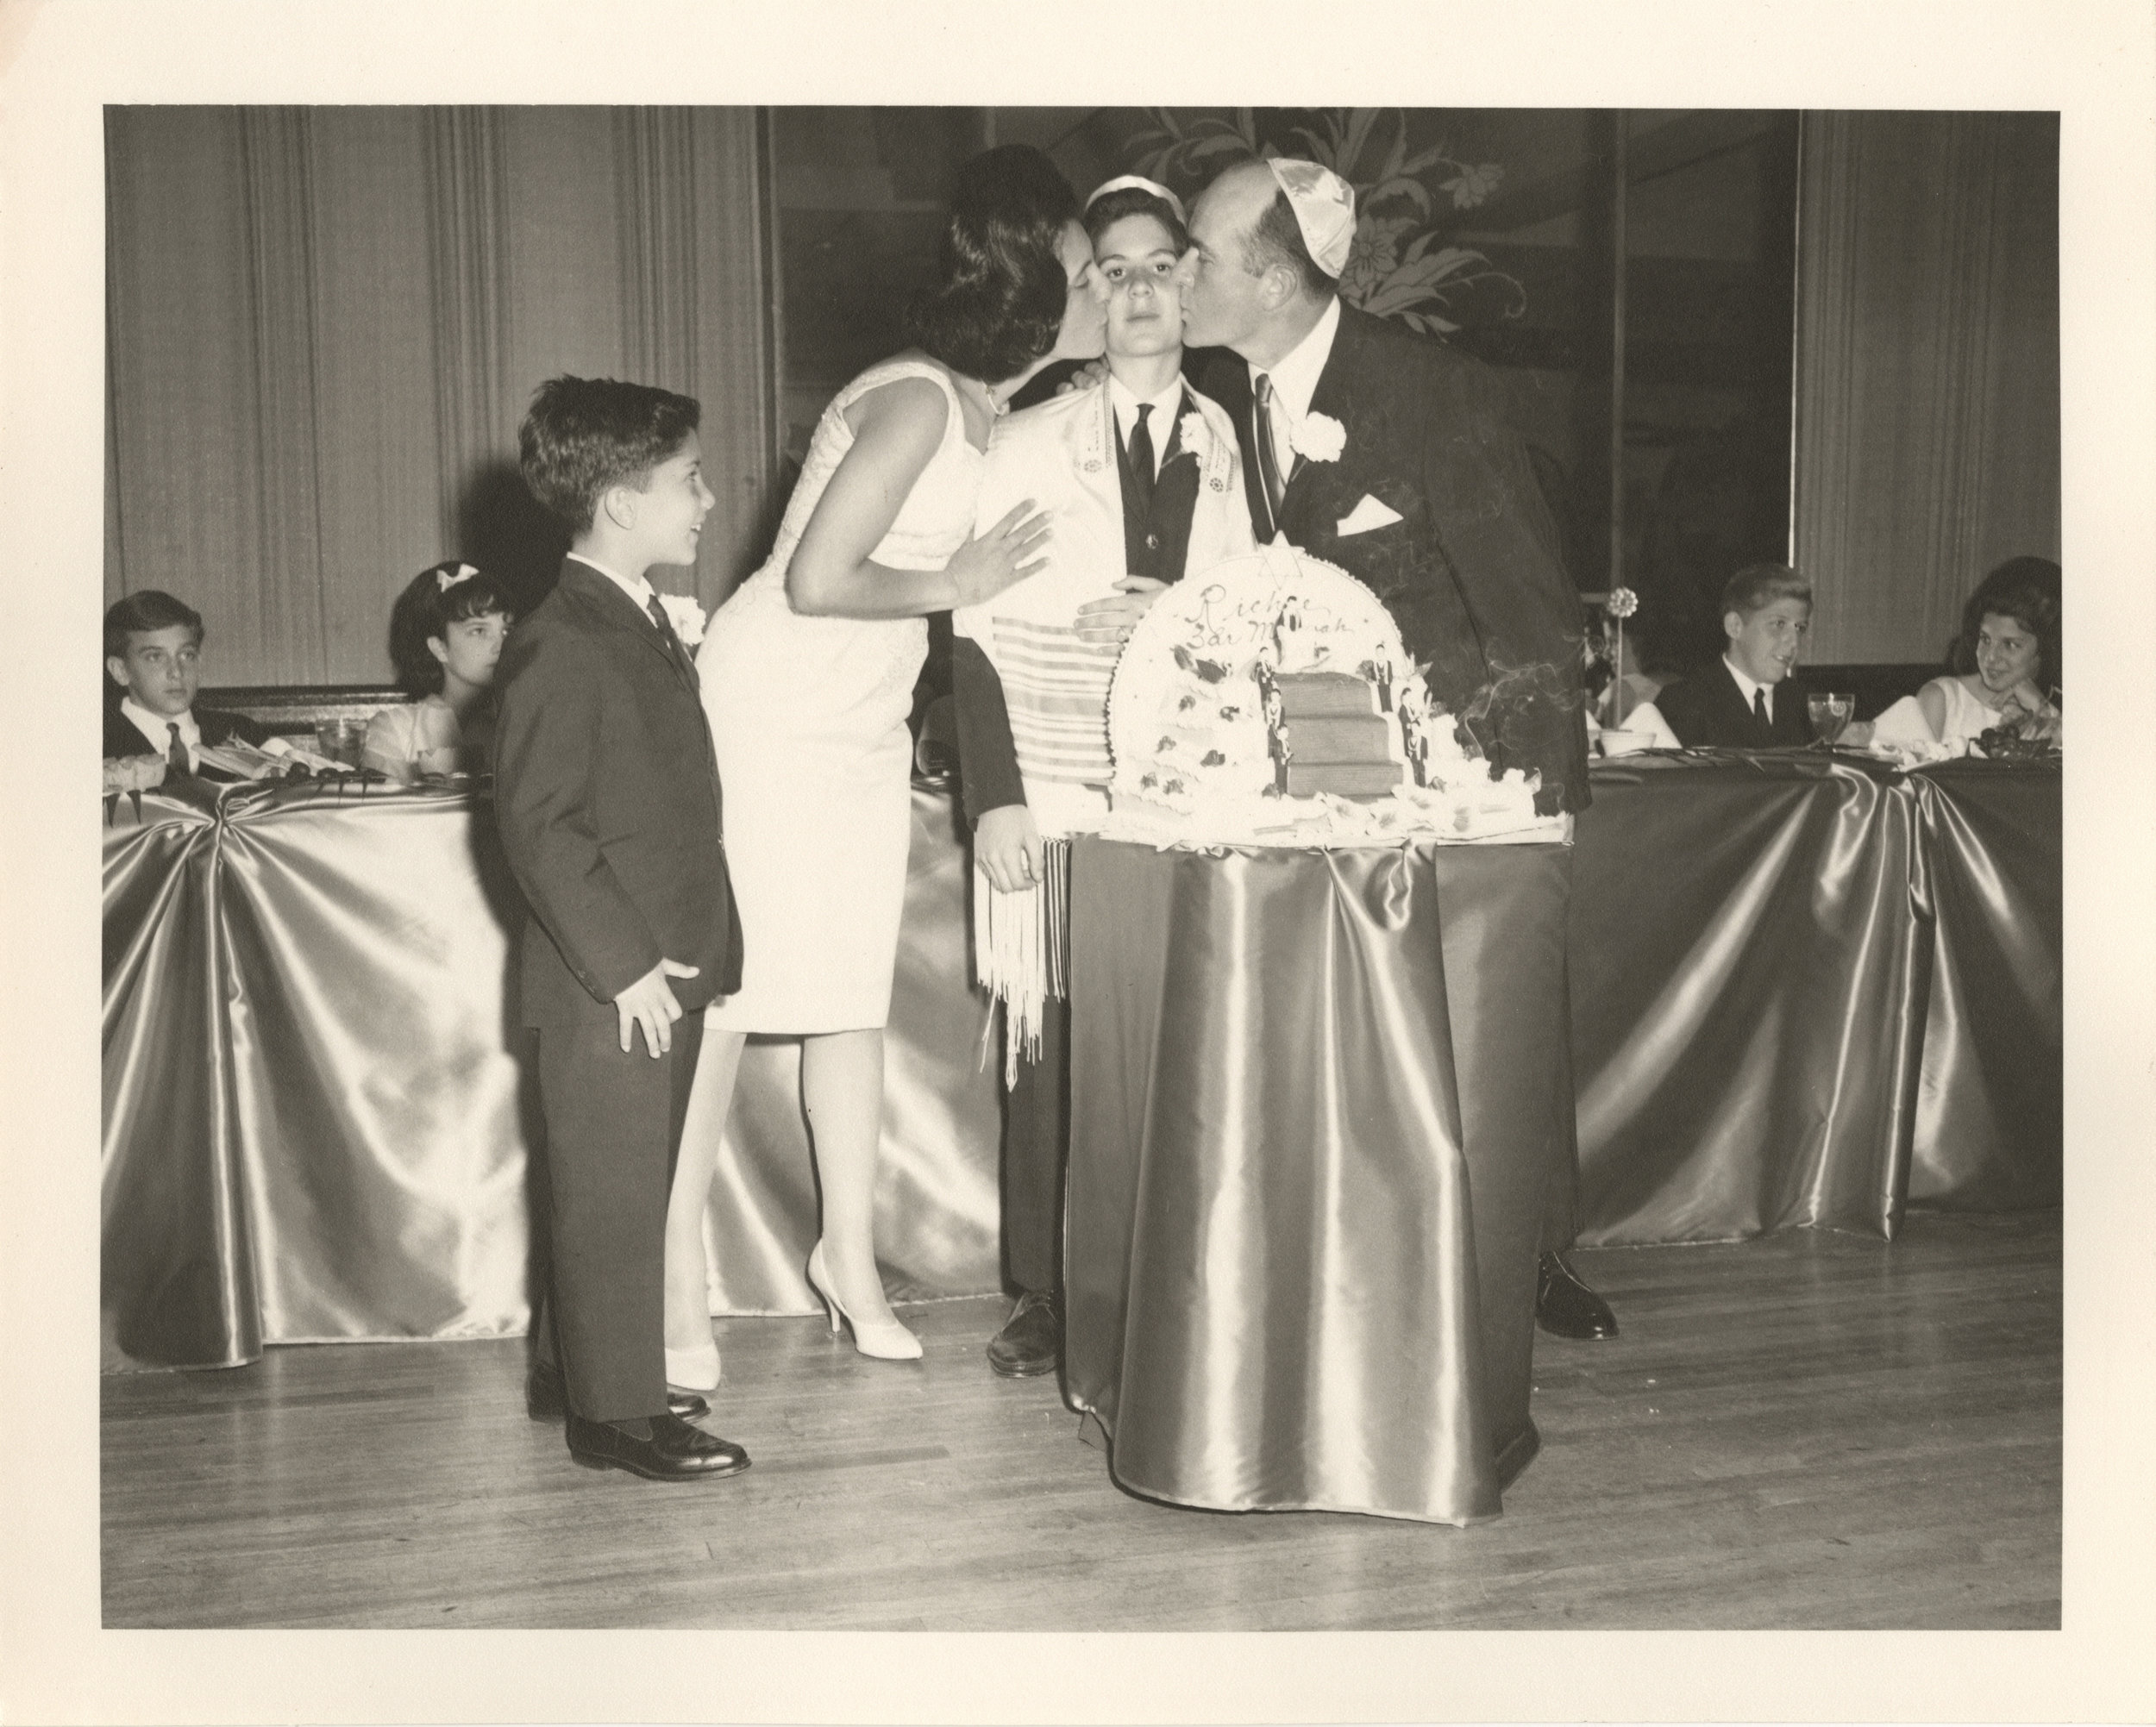 The moment my father 'becomes a man' at his Bar Mitzvah (1963).